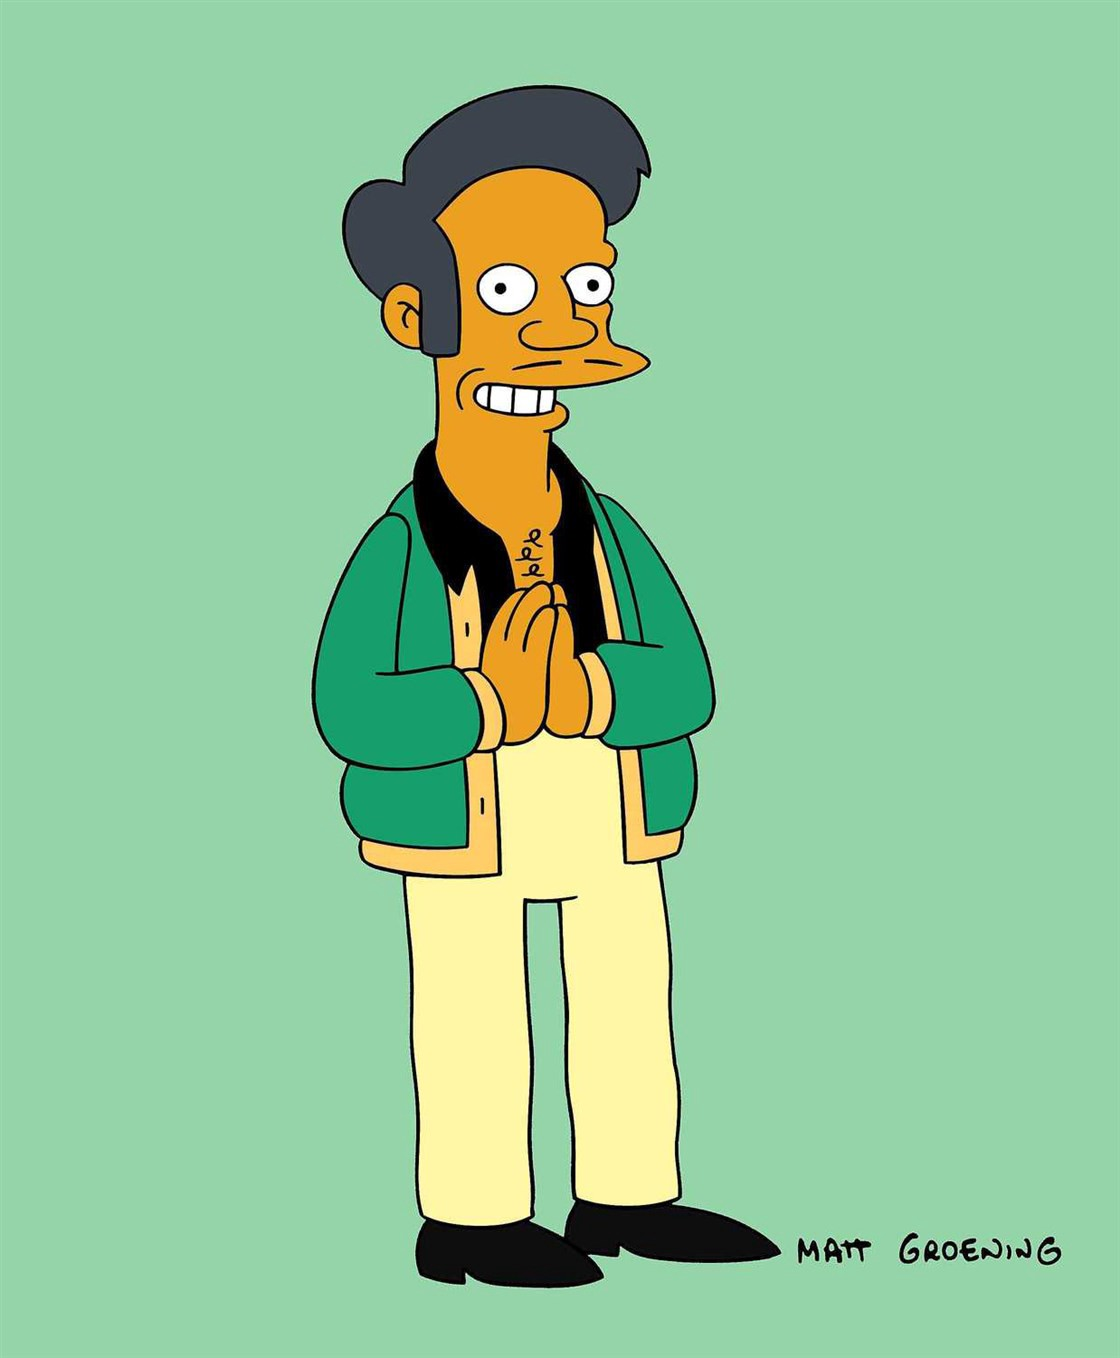 """The character Apu from The Simpsons is depicted doing a stereotypical palms-together """"namaste"""" gesture"""